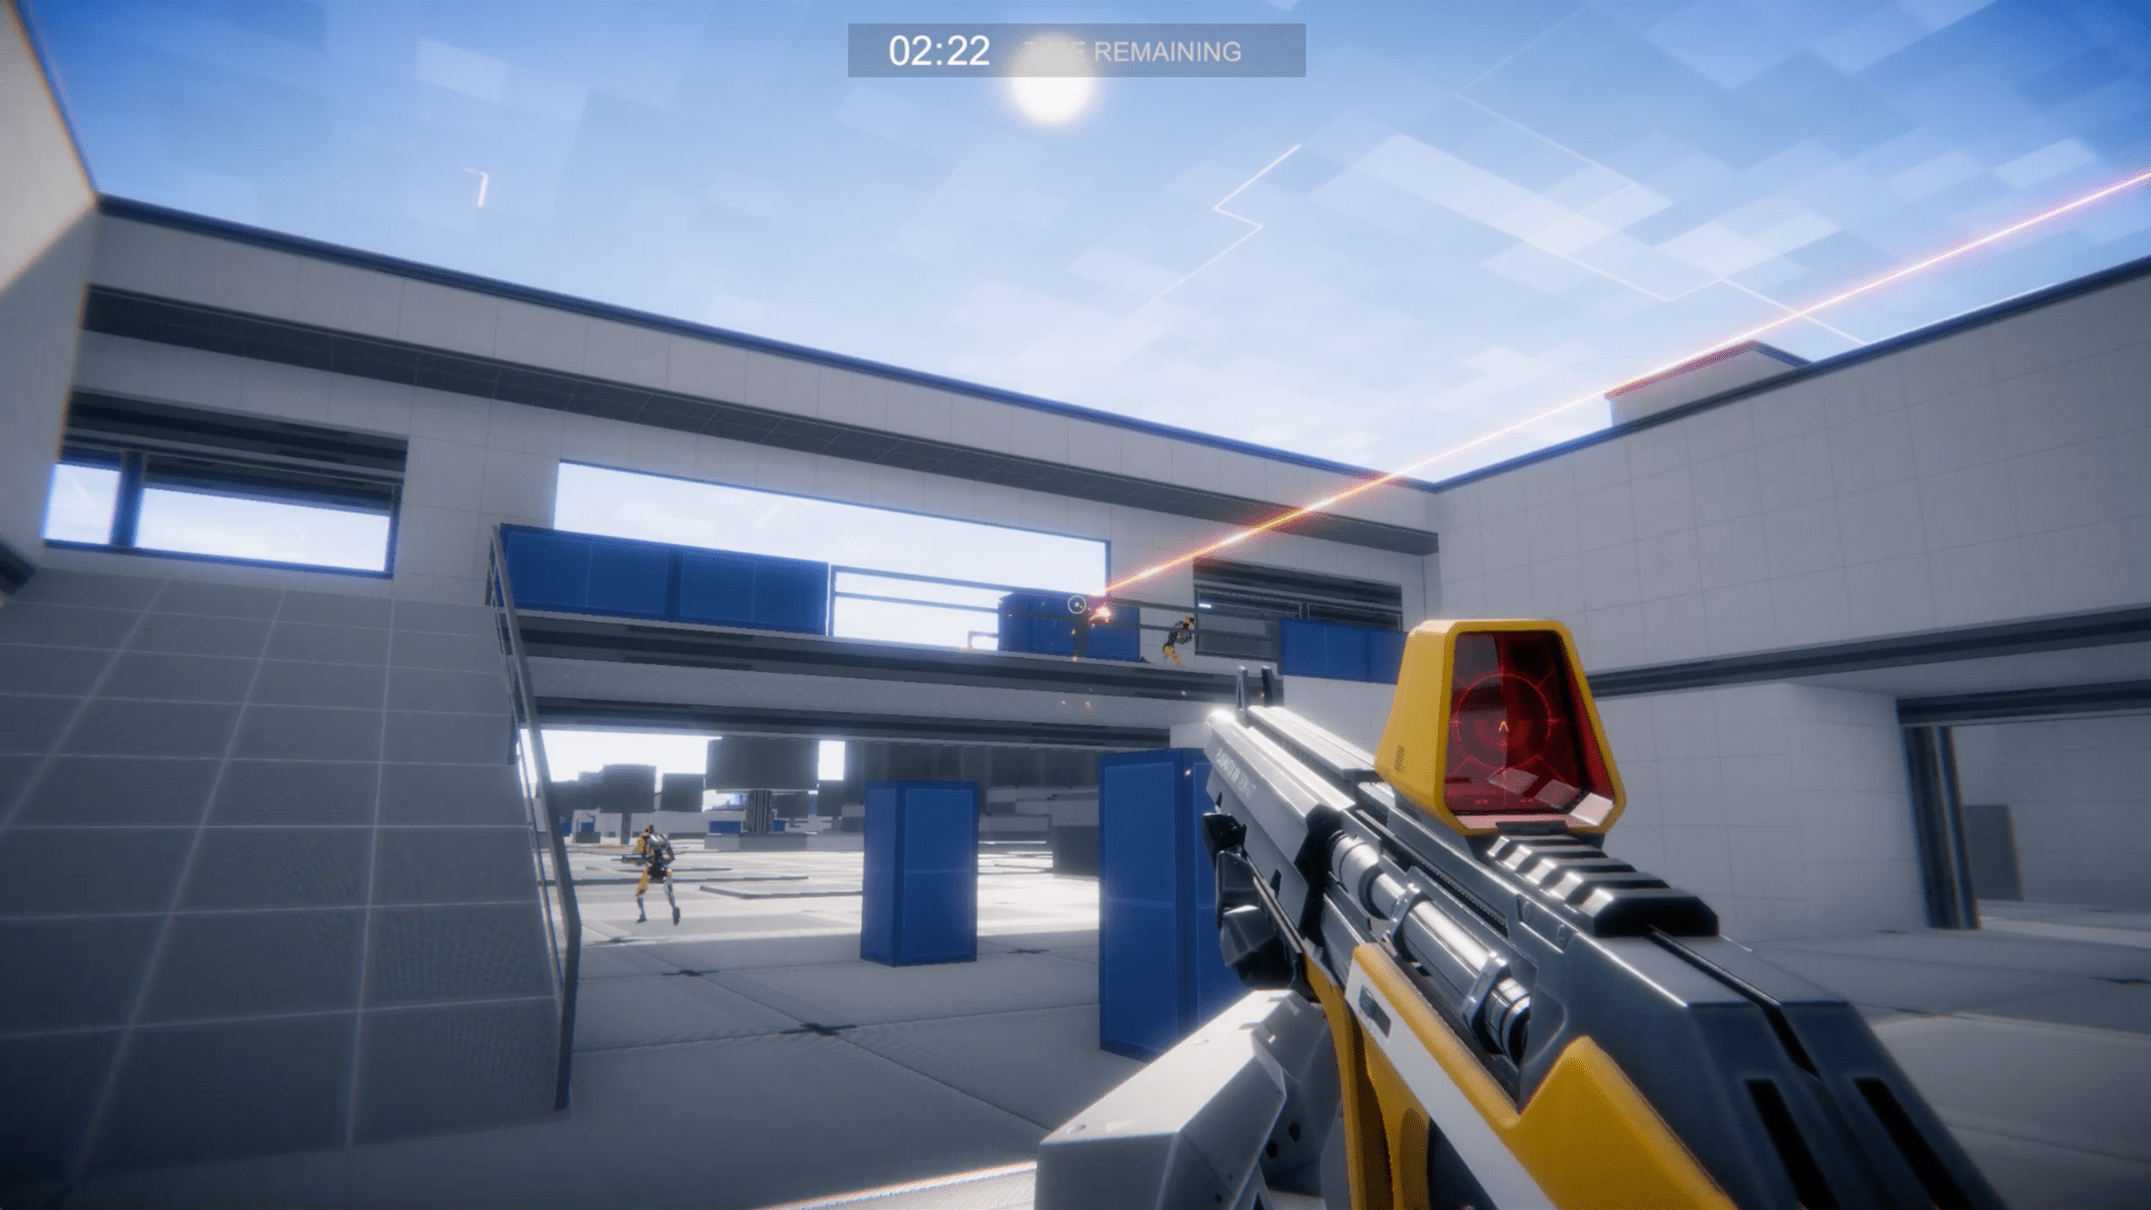 The FPS Starter Project